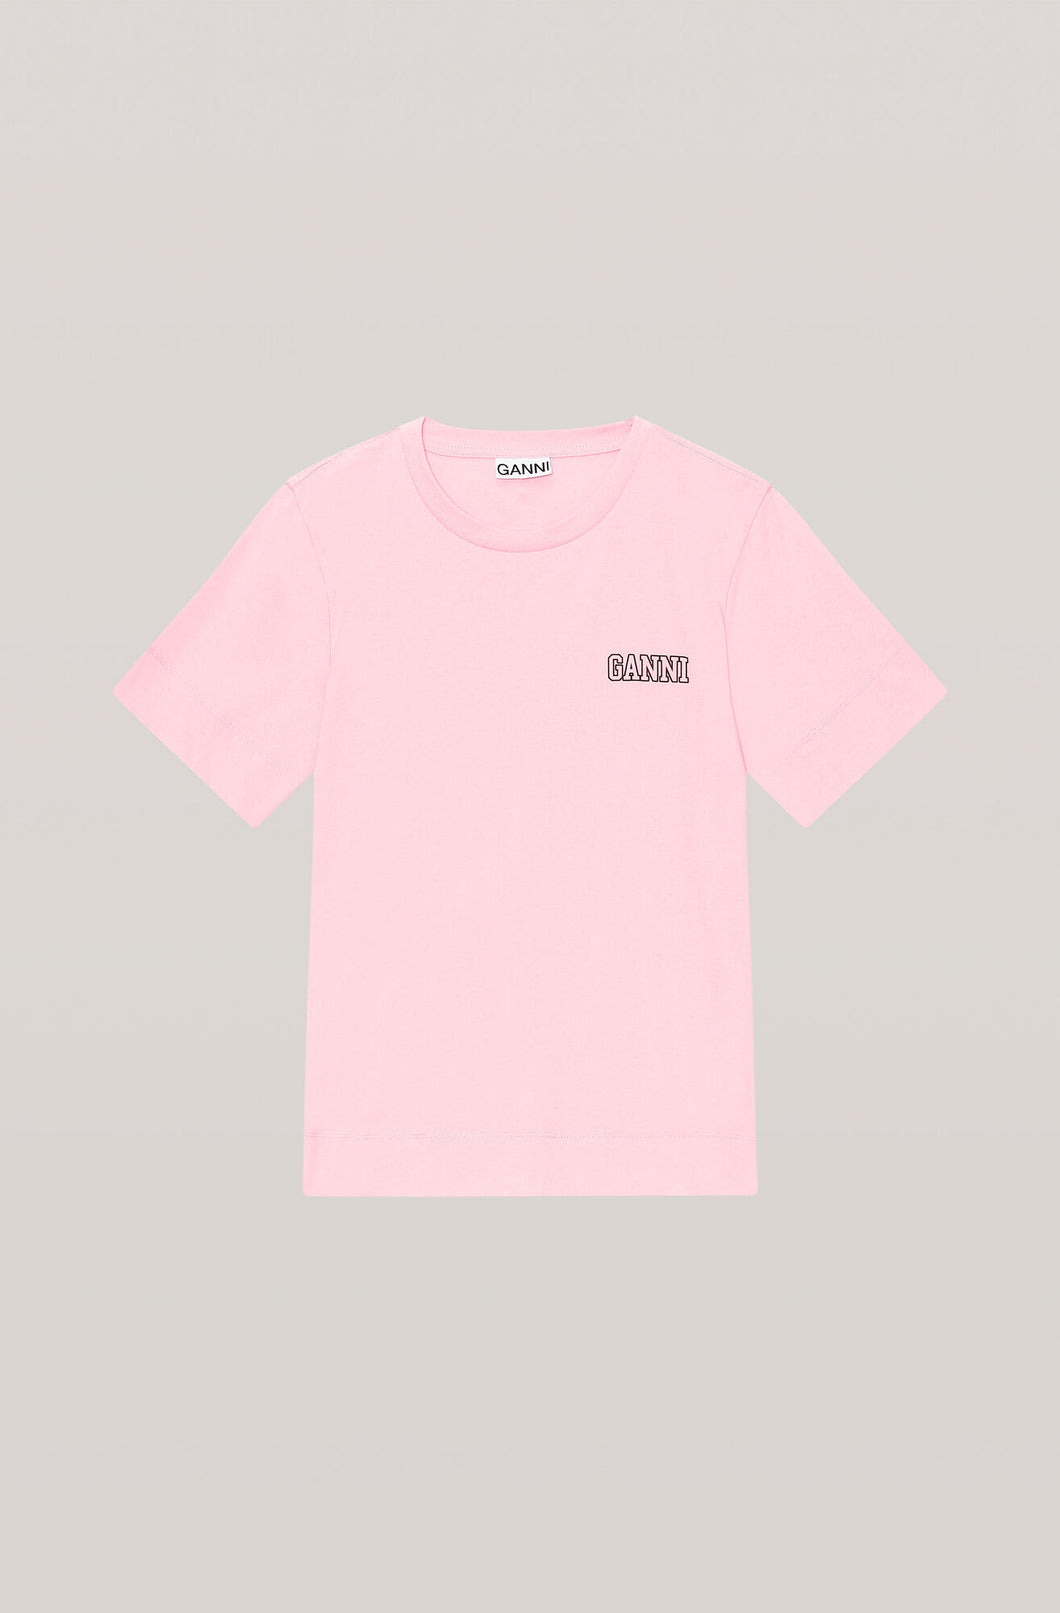 Ganni Software T-shirt Pink